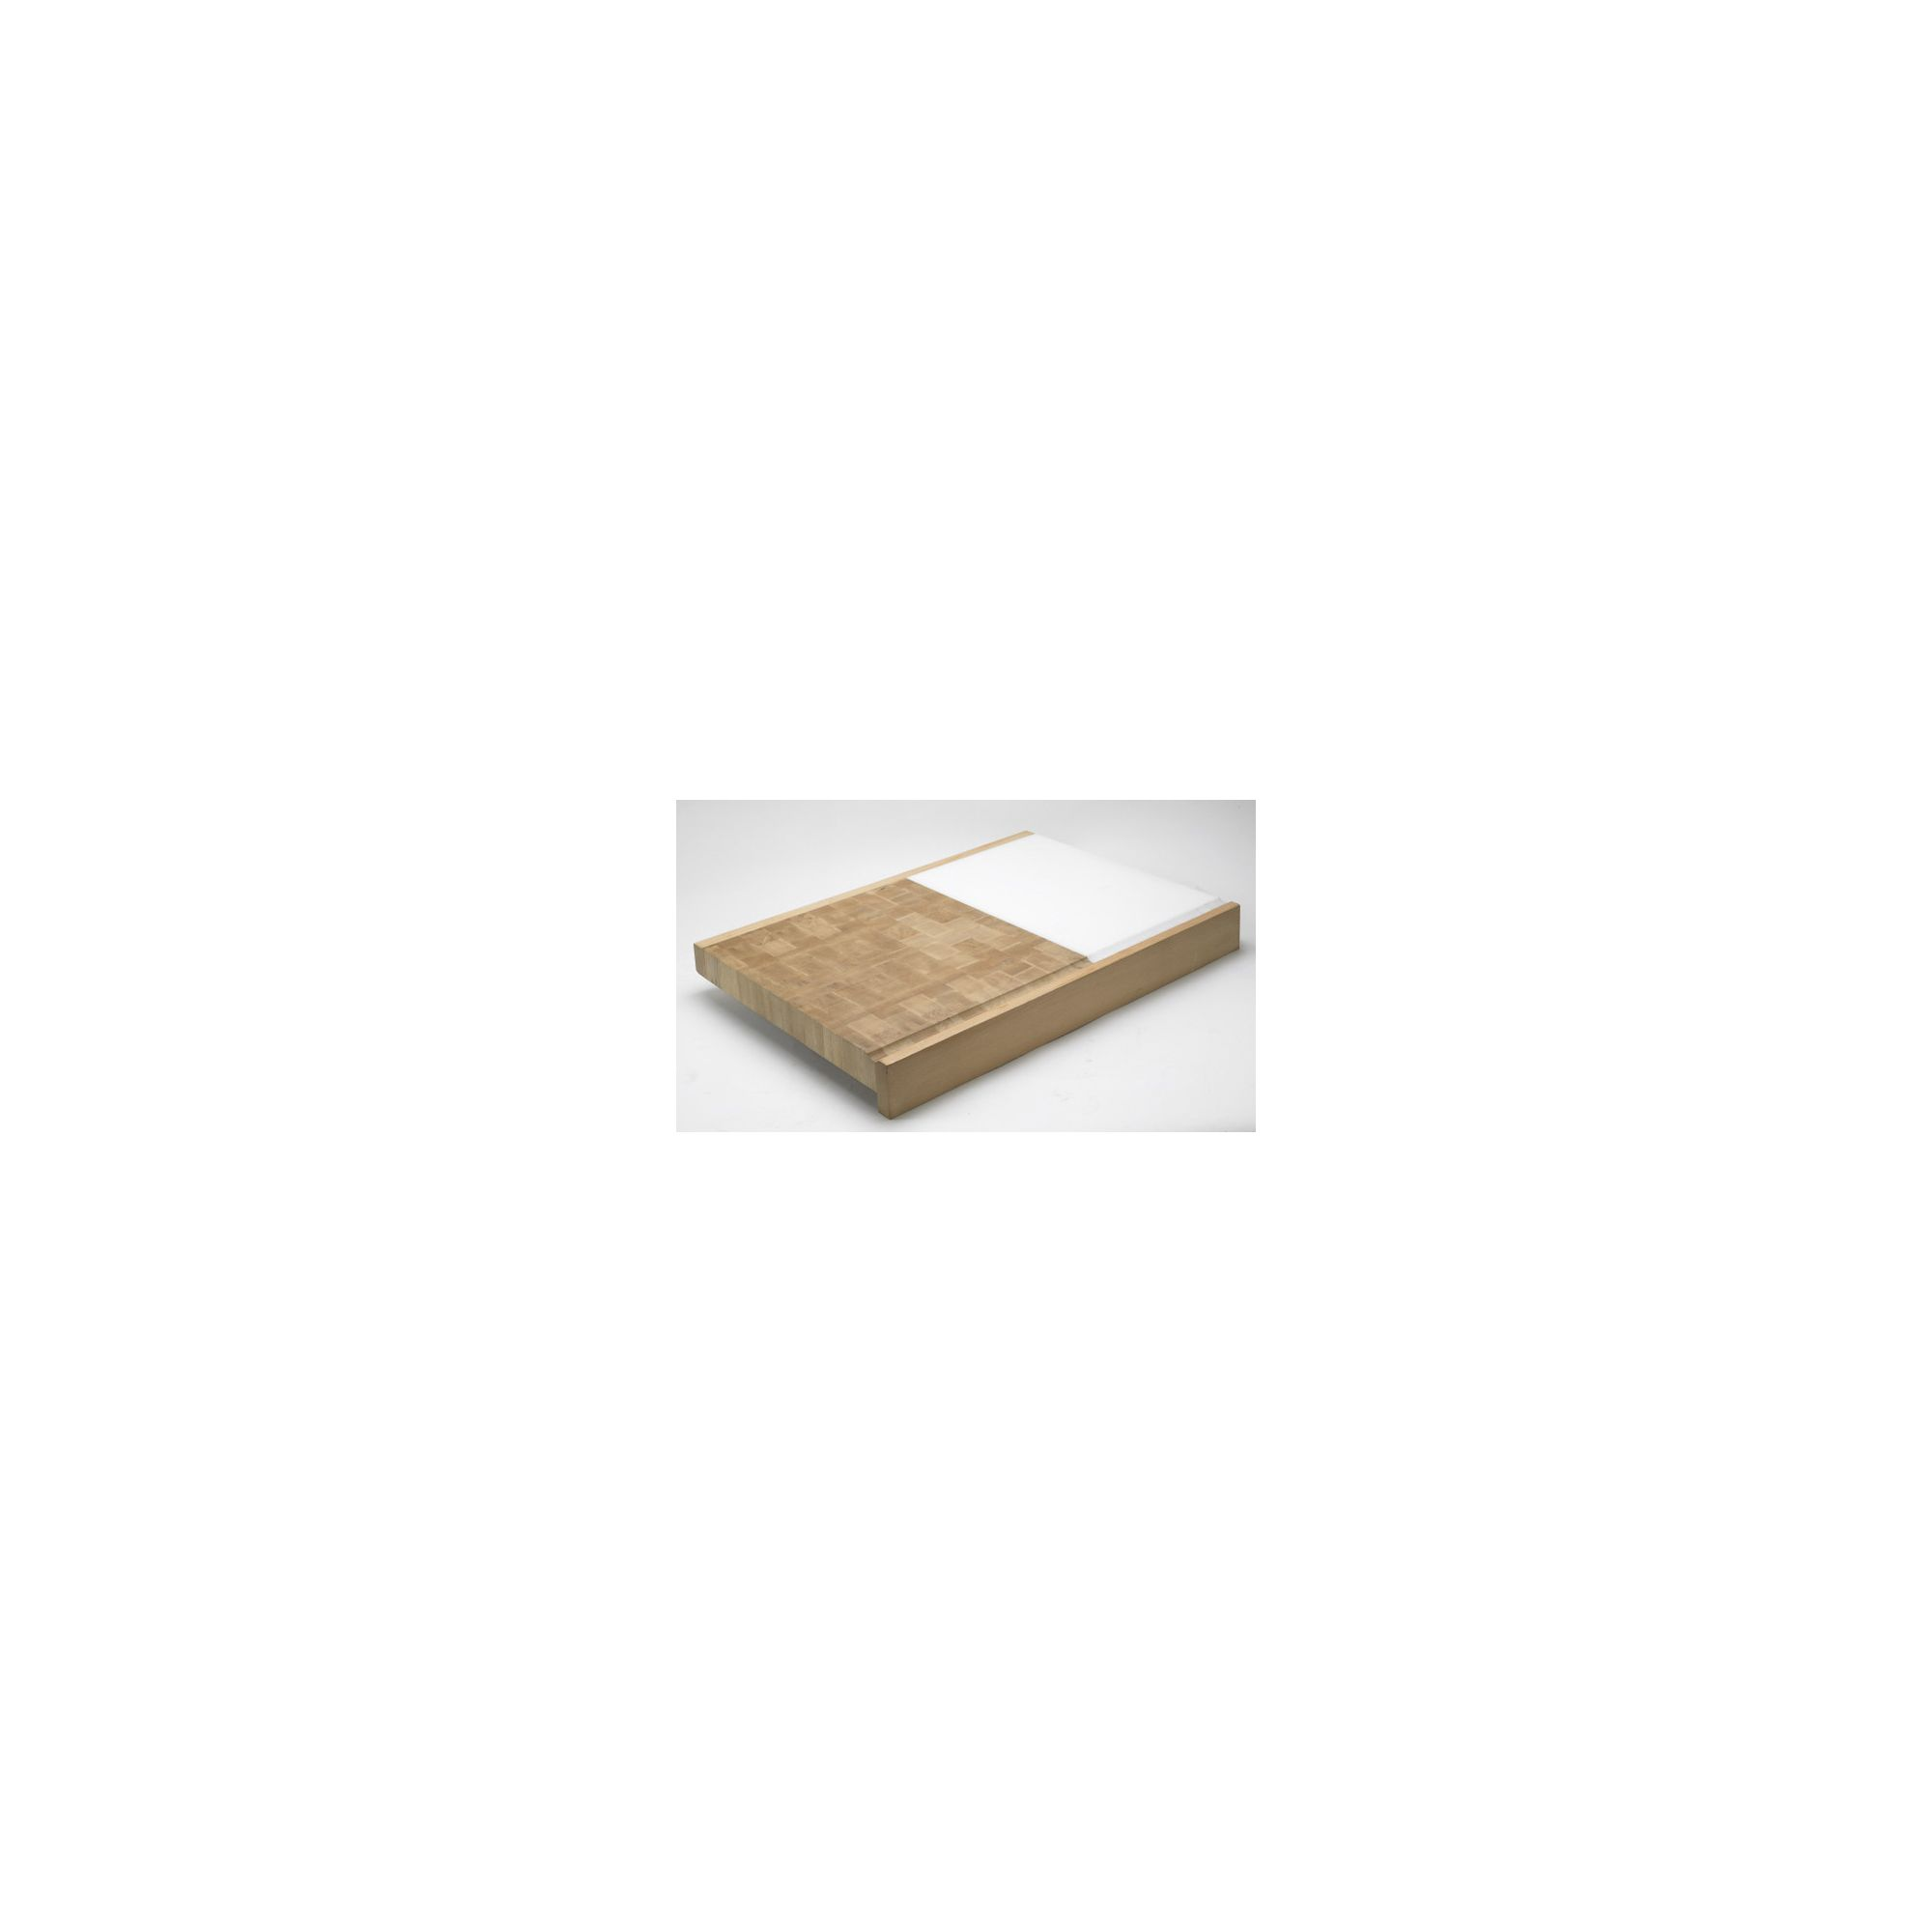 Chabret Stationary Worktop - 6cm X 80cm X 60cm at Tesco Direct